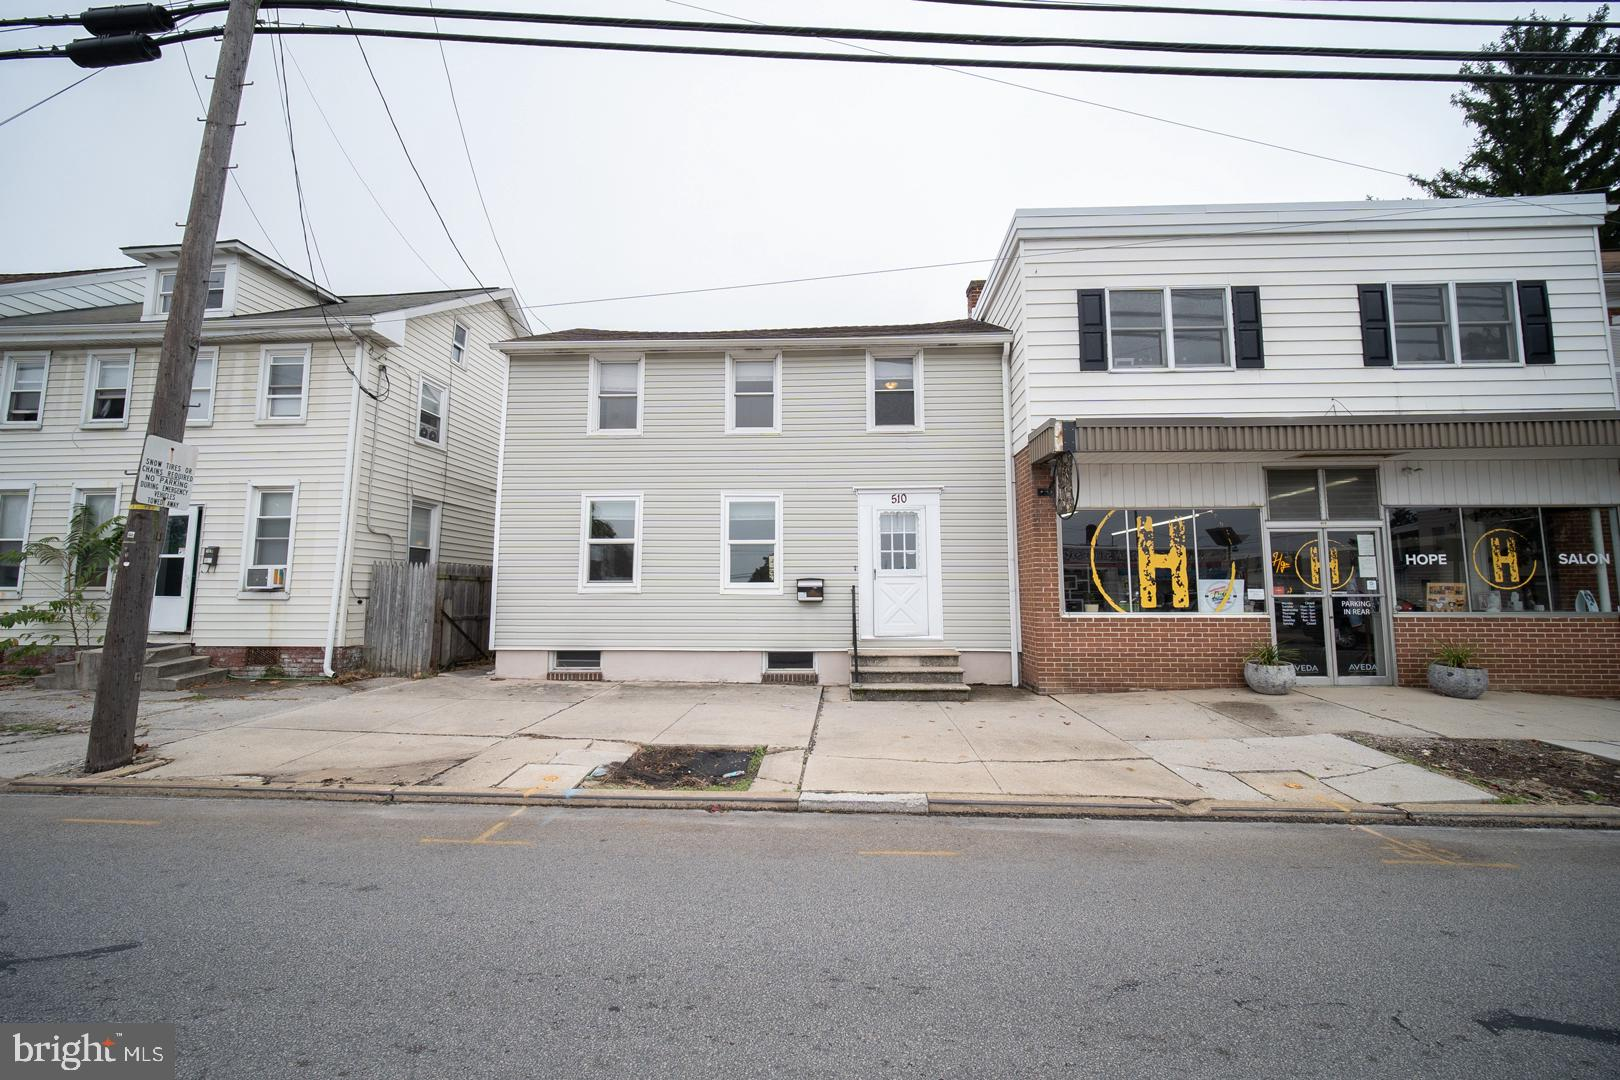 Come check out this inviting 2 bedroom 1 bath semi-detached home in Hanover's Historic District. Just steps away from Downtown Hanover. Enjoy the rich agriculture in what is known as the Snack Capital of the World.